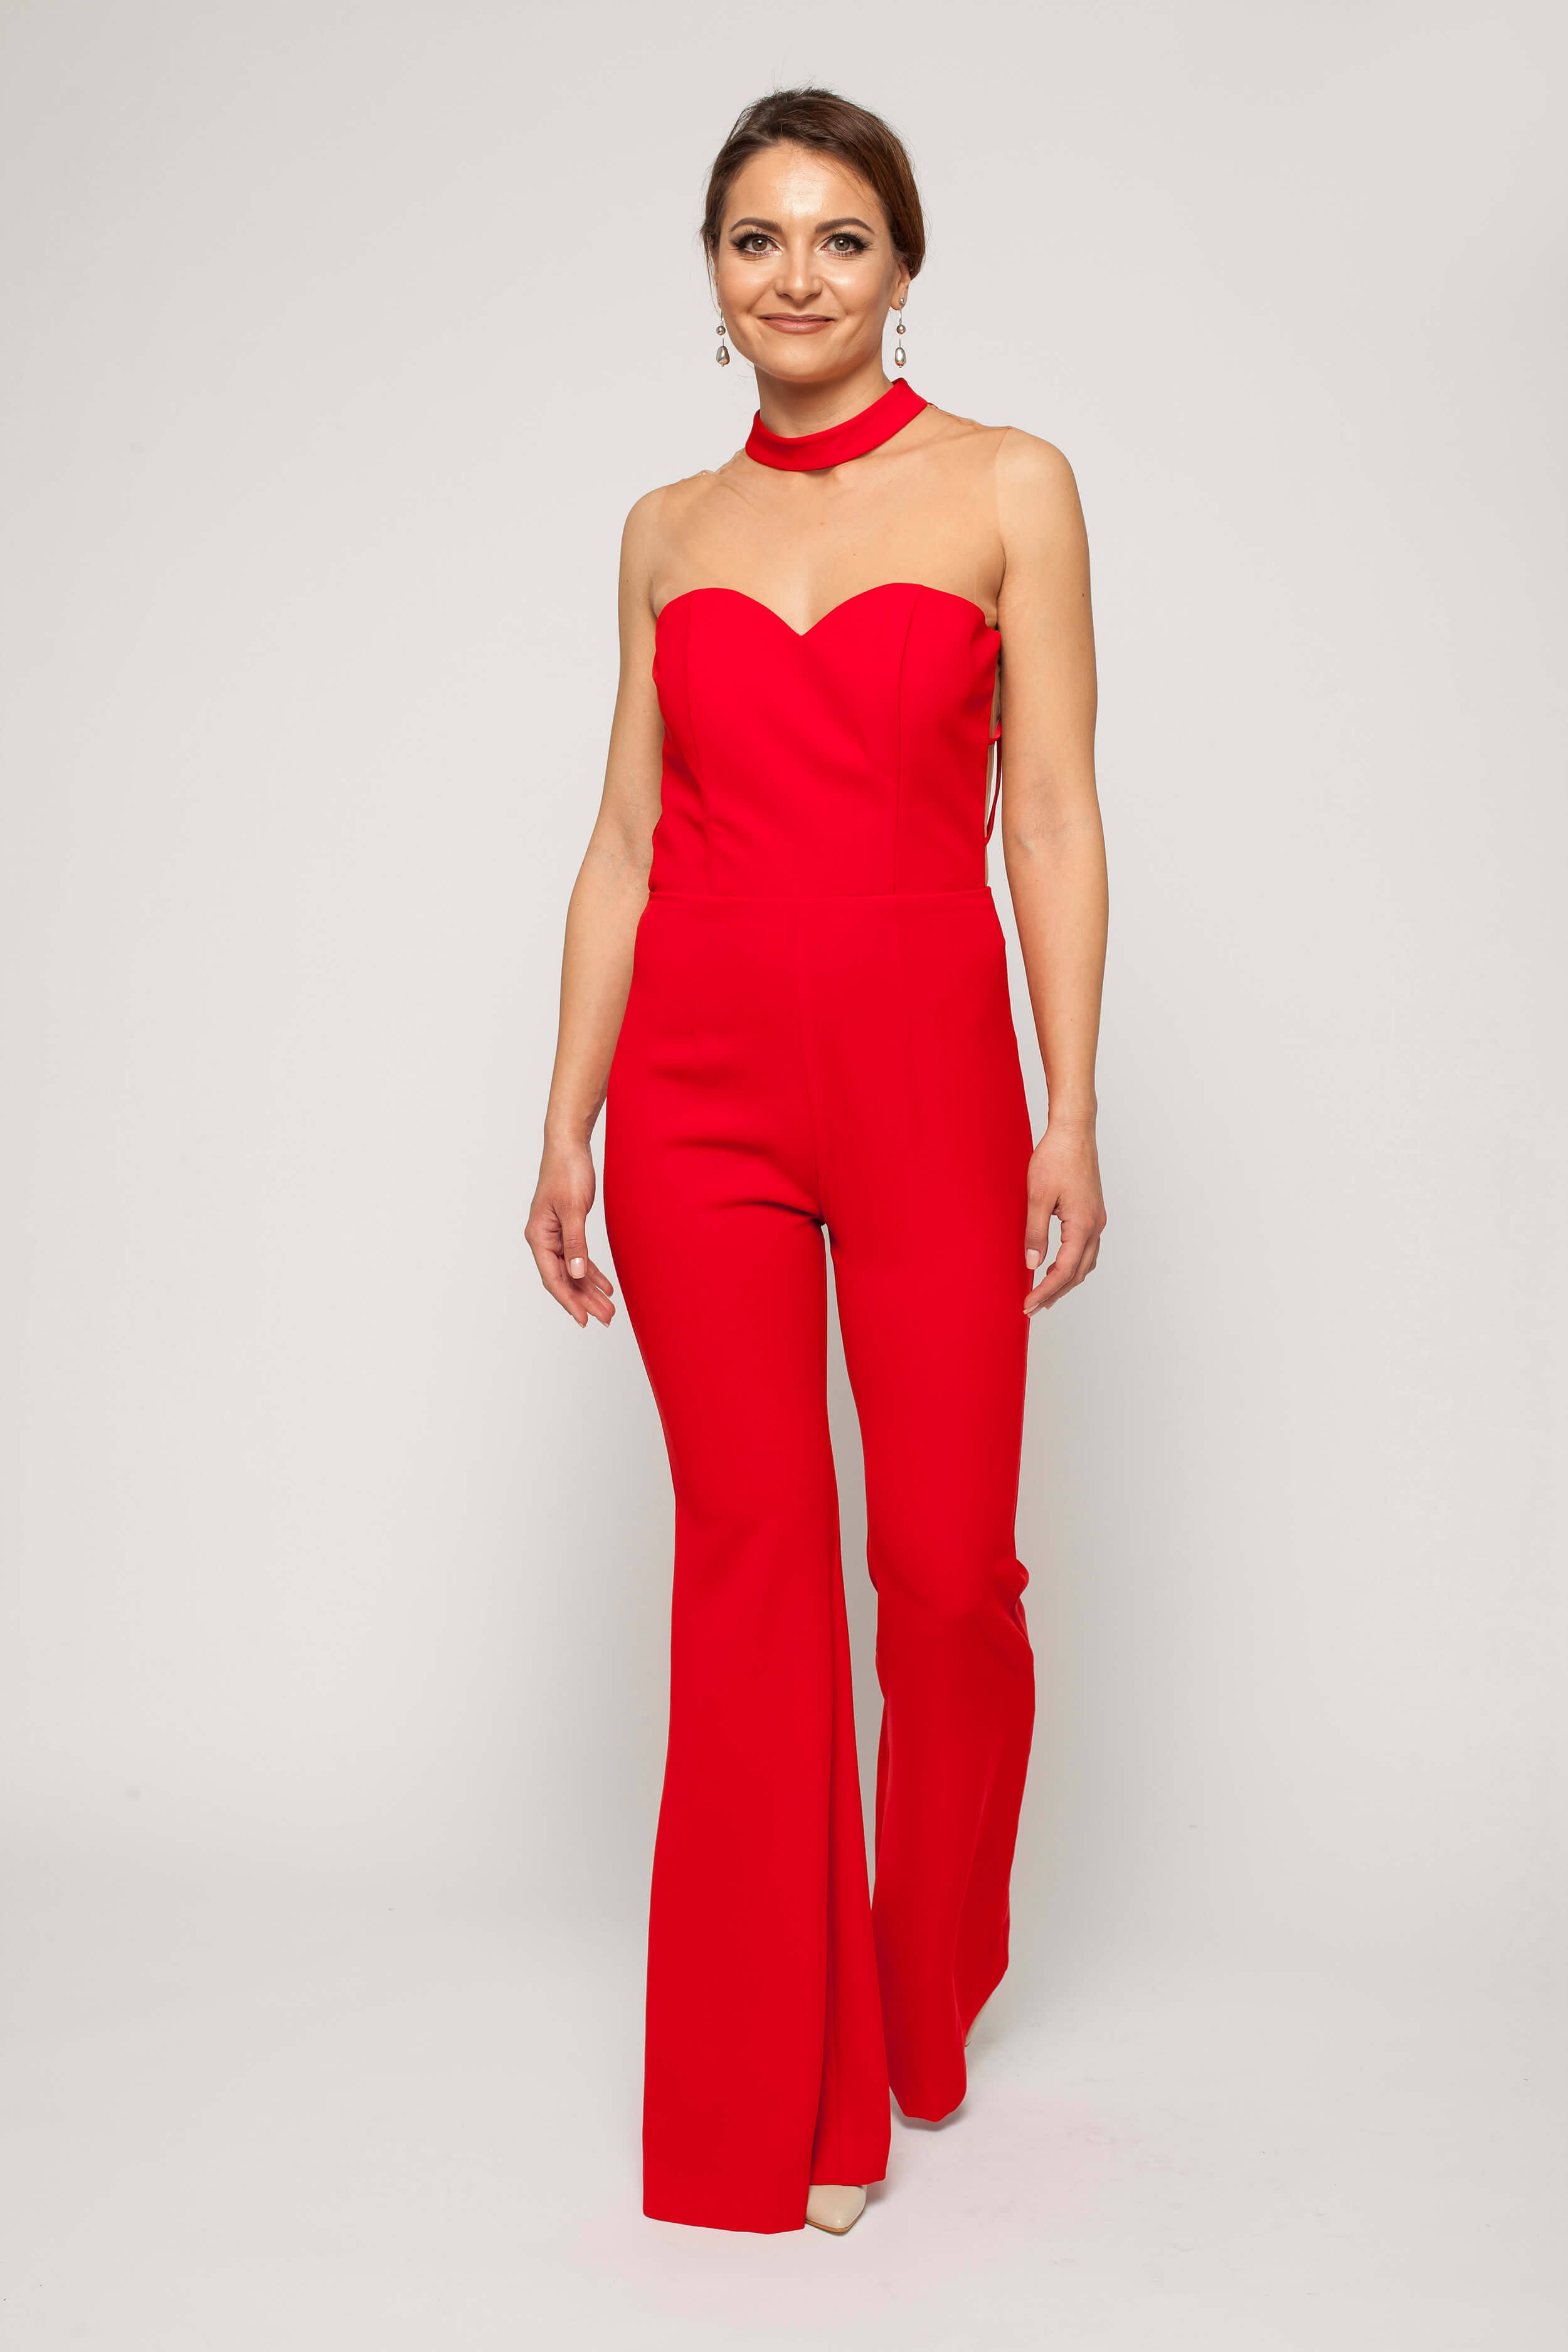 red jumpsuit with bare back 1